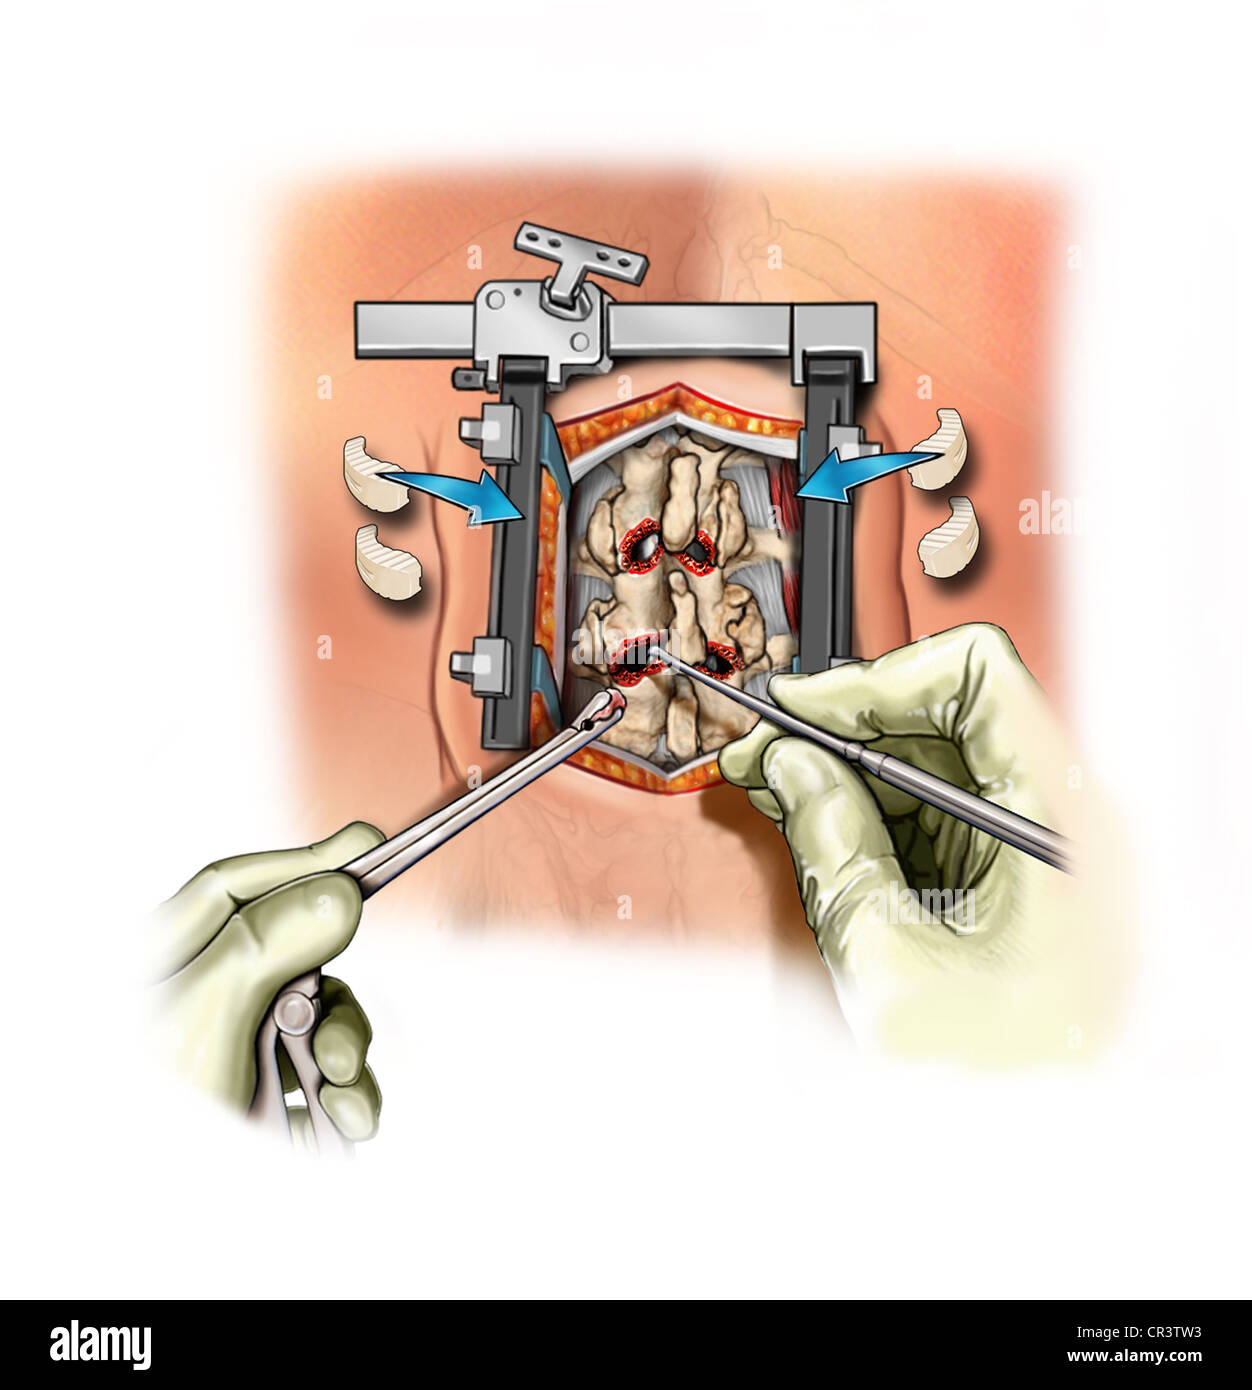 L2-3, L3-4 Foraminotomies and Discectomy - Stock Image